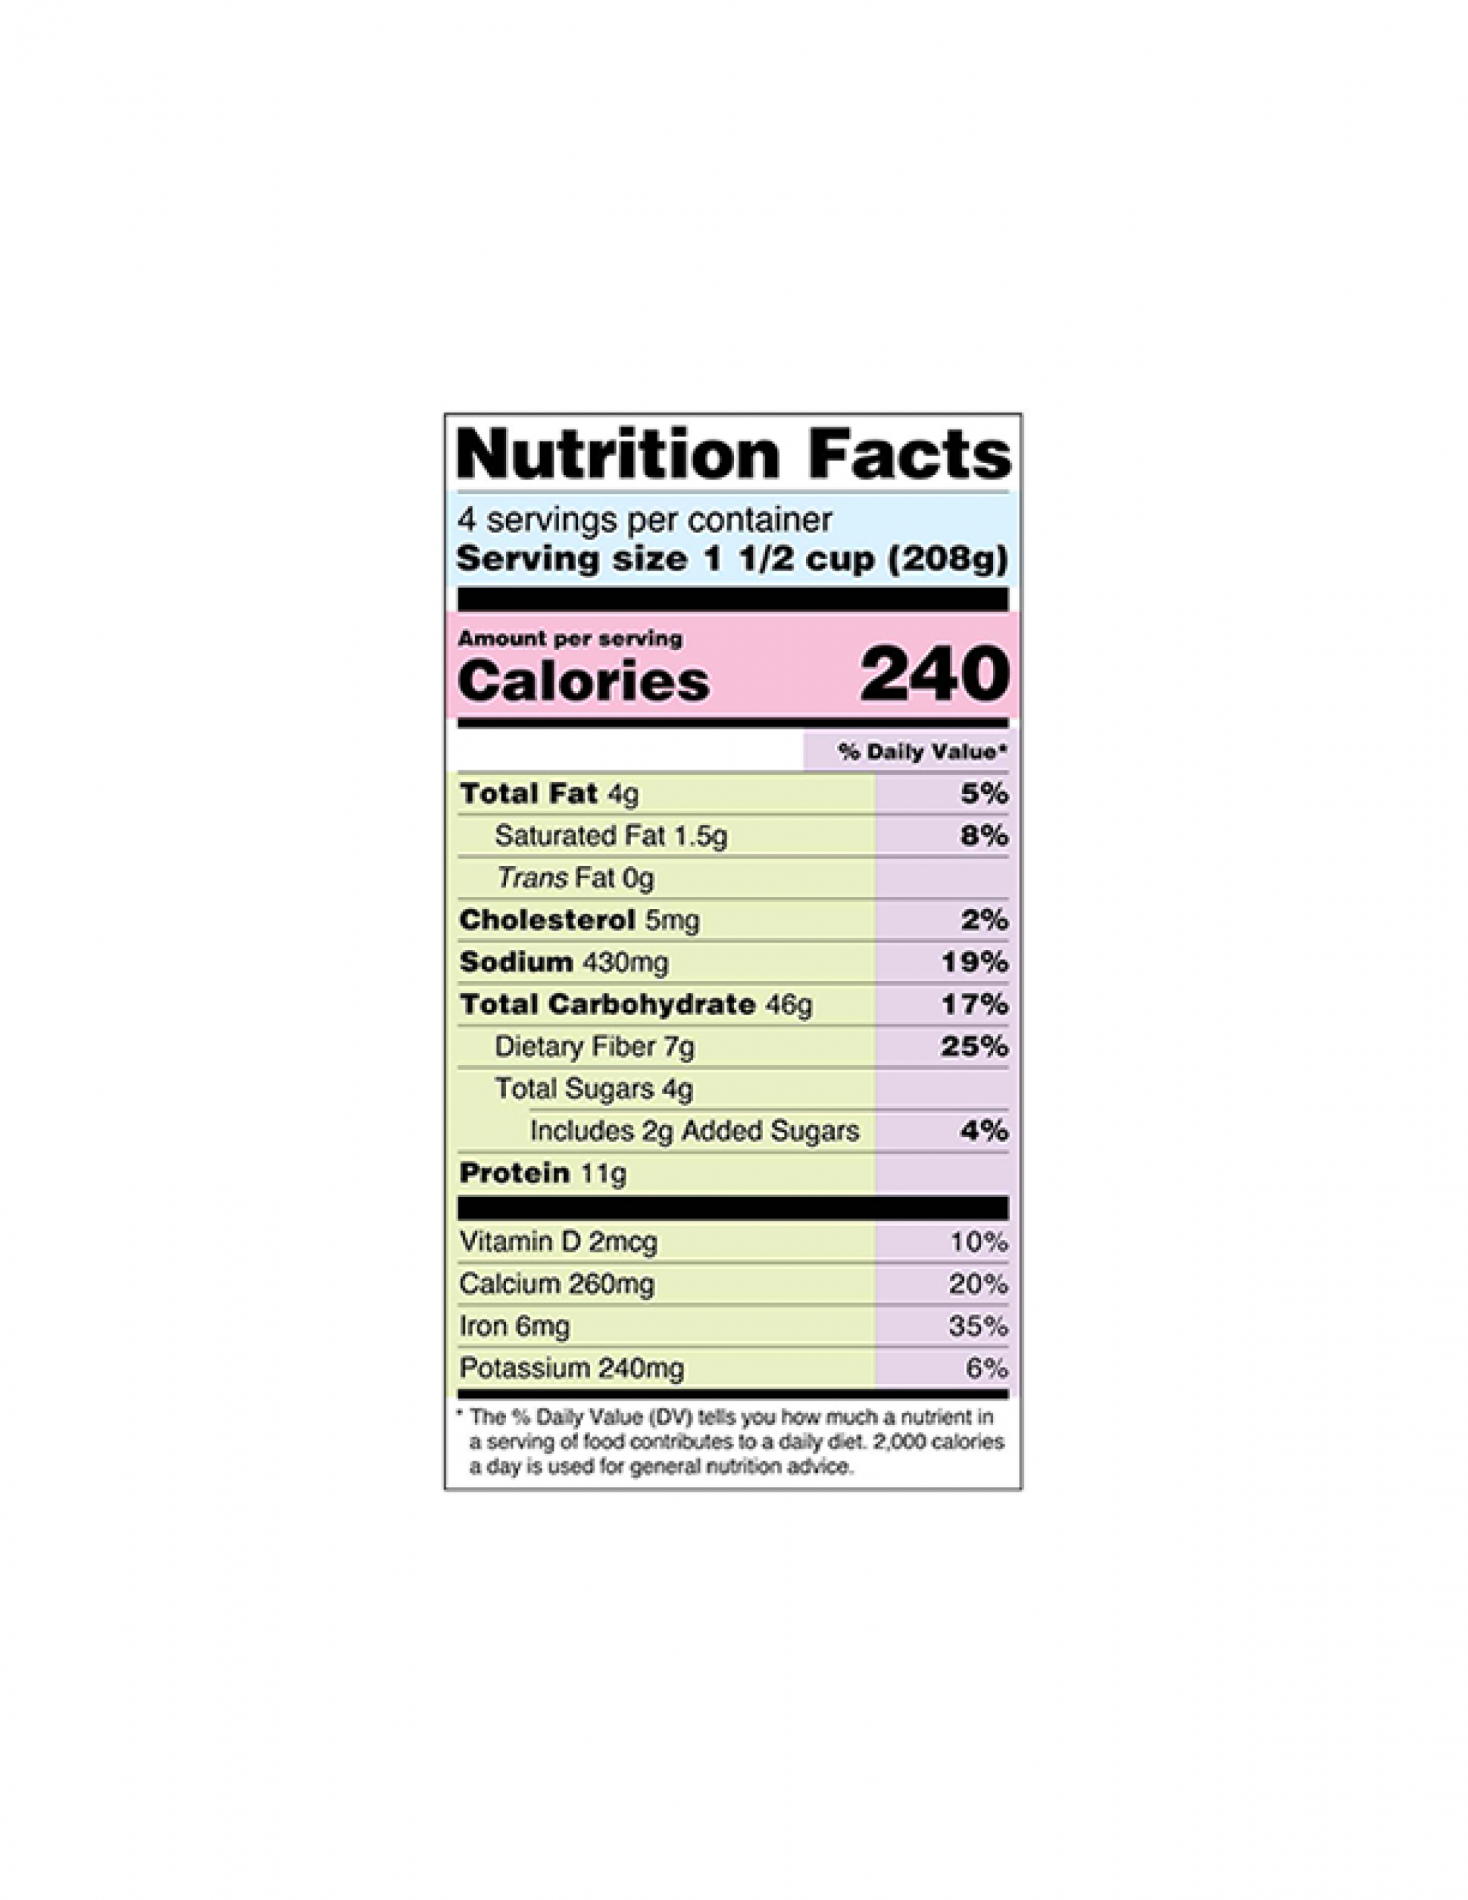 Are Your Nutrition Facts Labels In Compliance with the New Format?